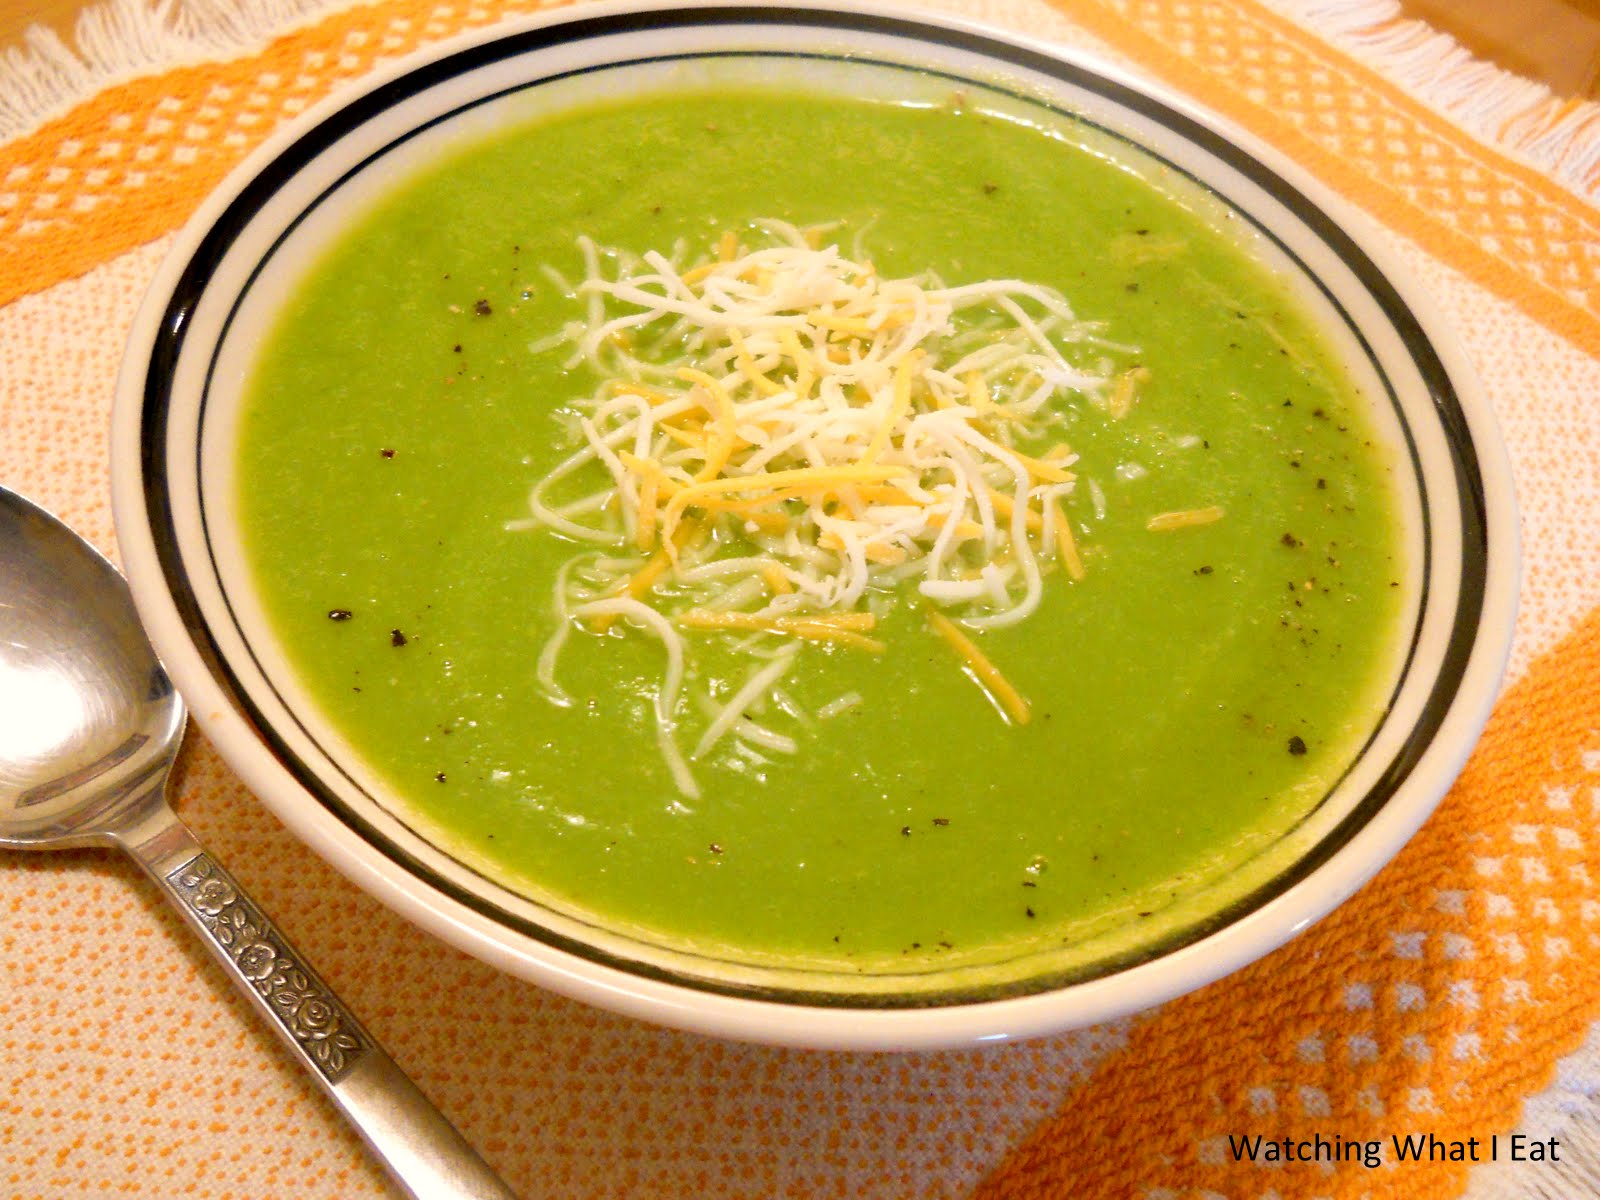 Gordon Ramsay Broccoli Soup Kitchen Nightmares